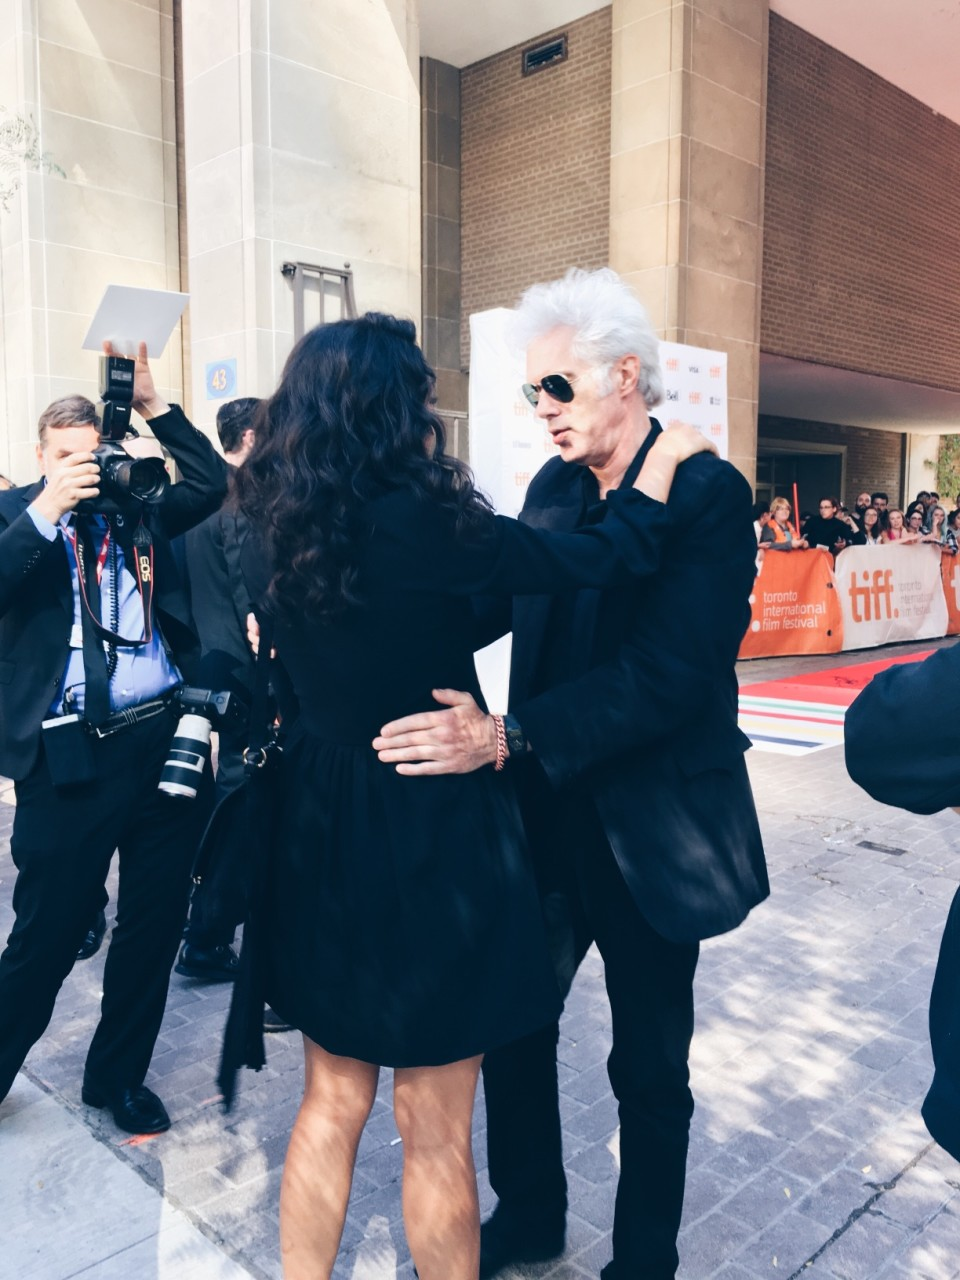 Jim Jarmusch hugging or waltzing  (1)